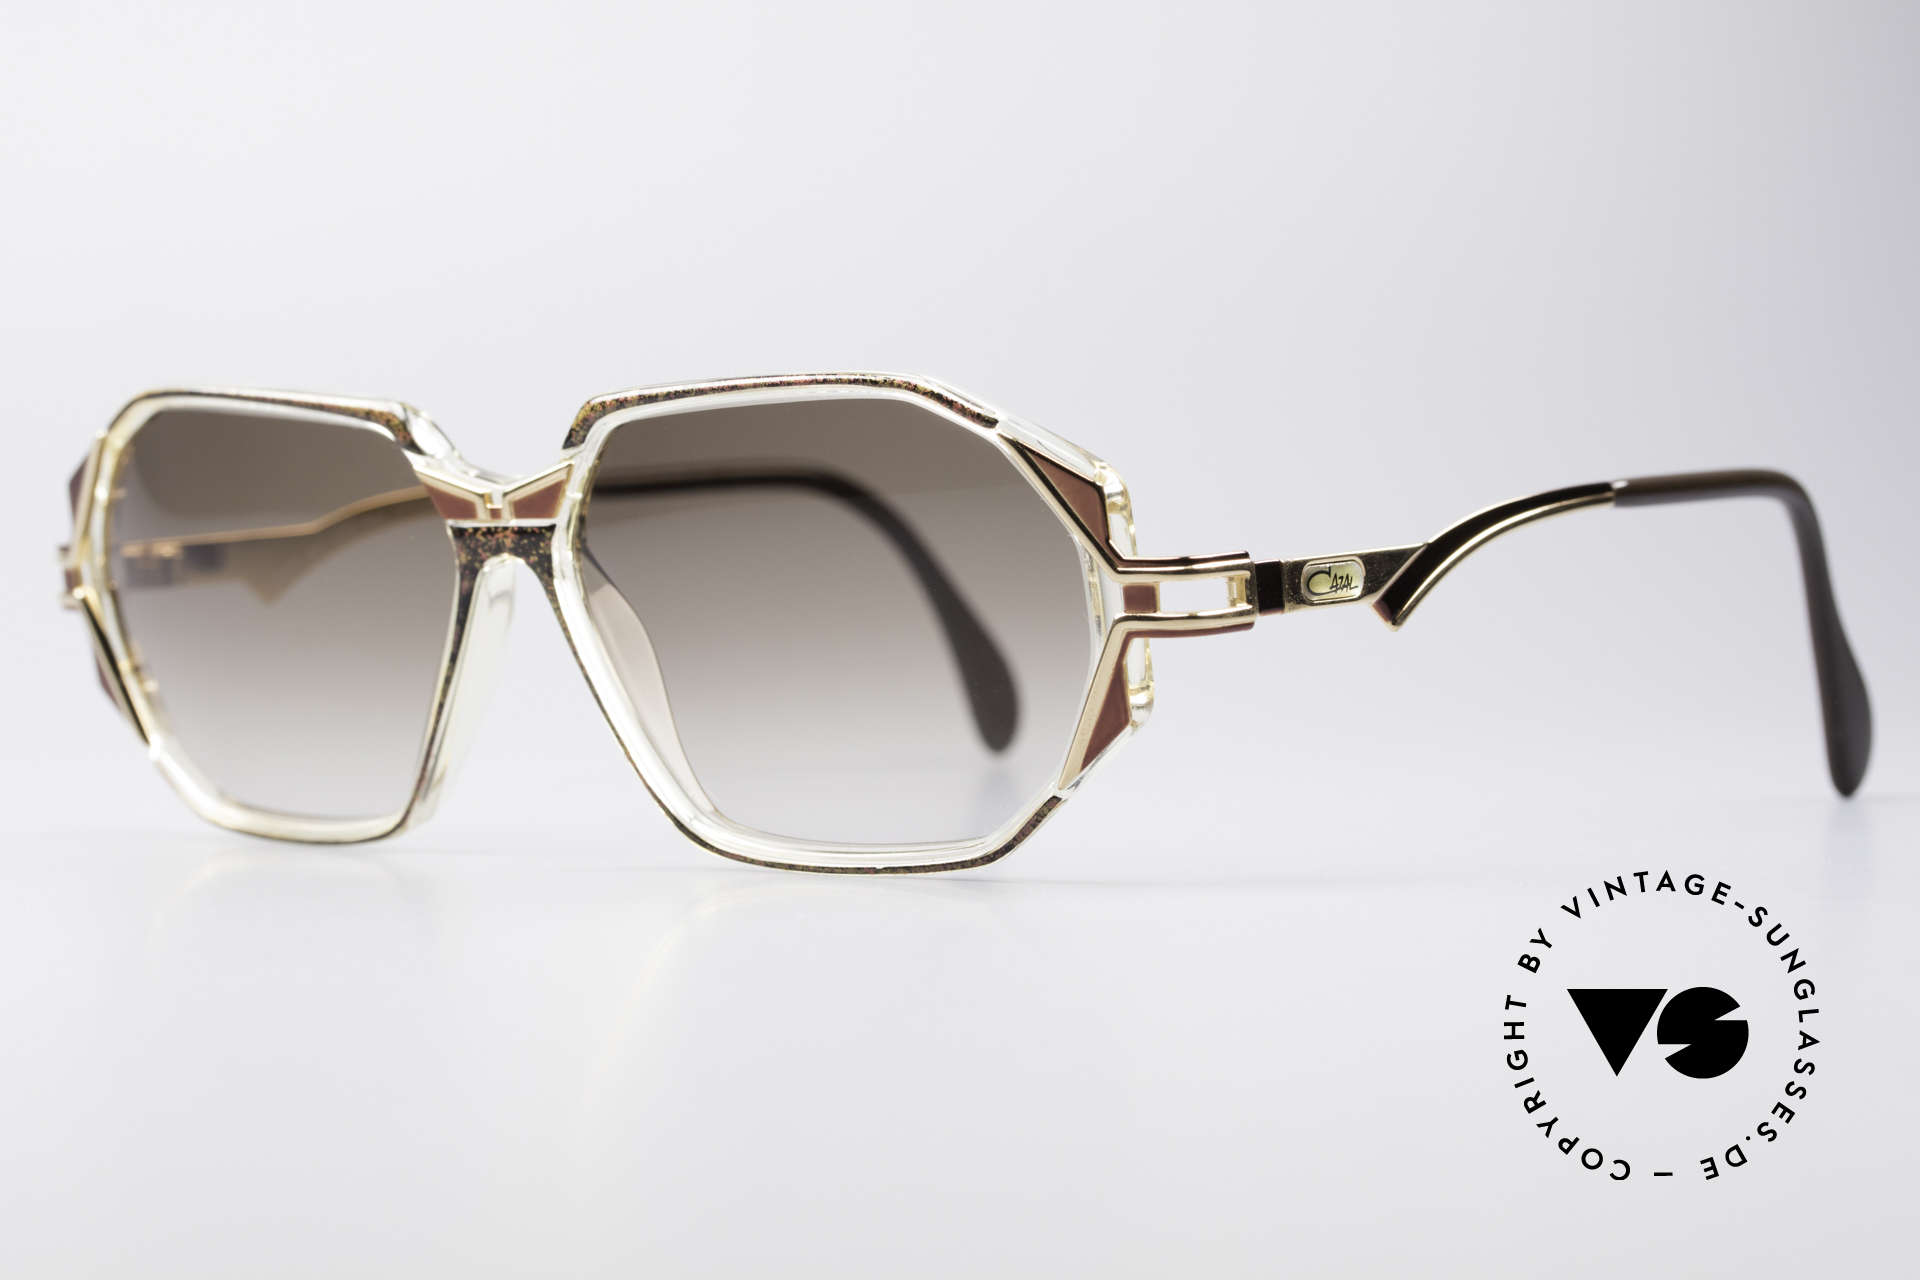 Cazal 361 Original Designer Sunglasses, glamorous combination of materials & colors; just fancy, Made for Women